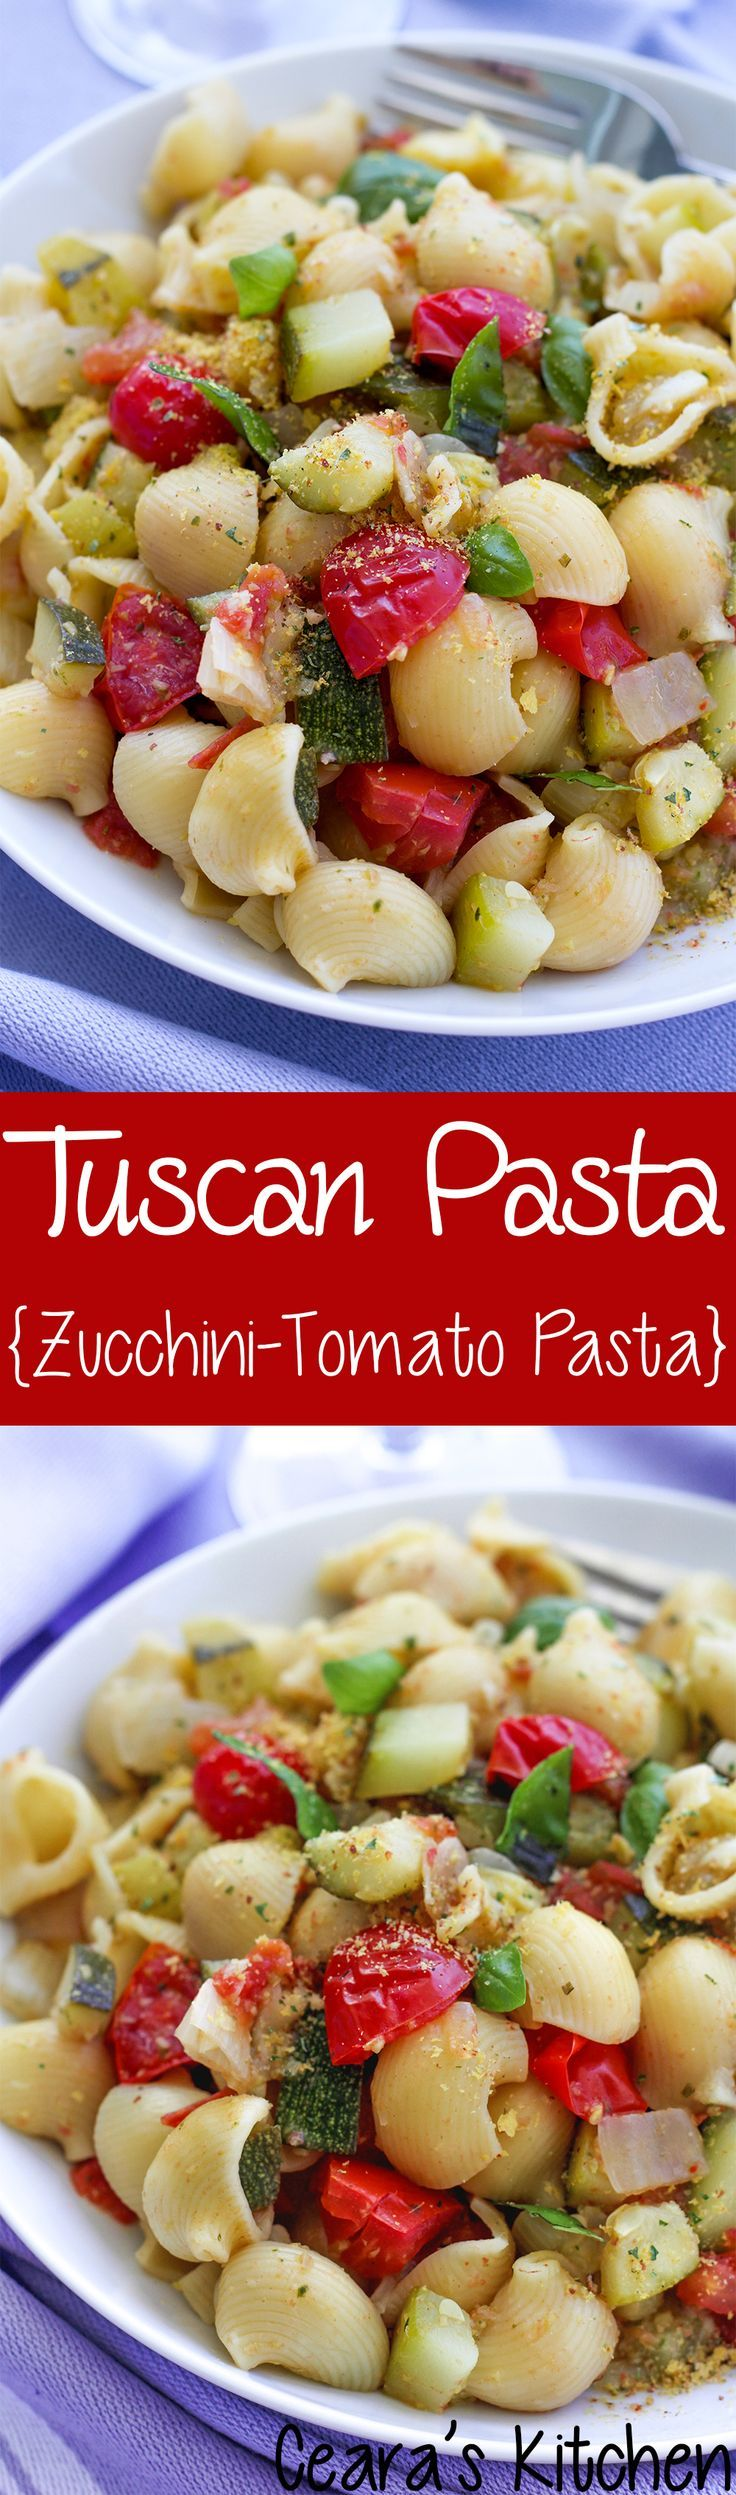 This Tuscan Pasta or Zucchini and Tomato Pasta is based off a pasta dish I whipped up using local ingredients in Italy. I recreated it at home with a simple green olive and basil tapenade. This truly is the perfect simple Summer pasta dish! #pastaeats